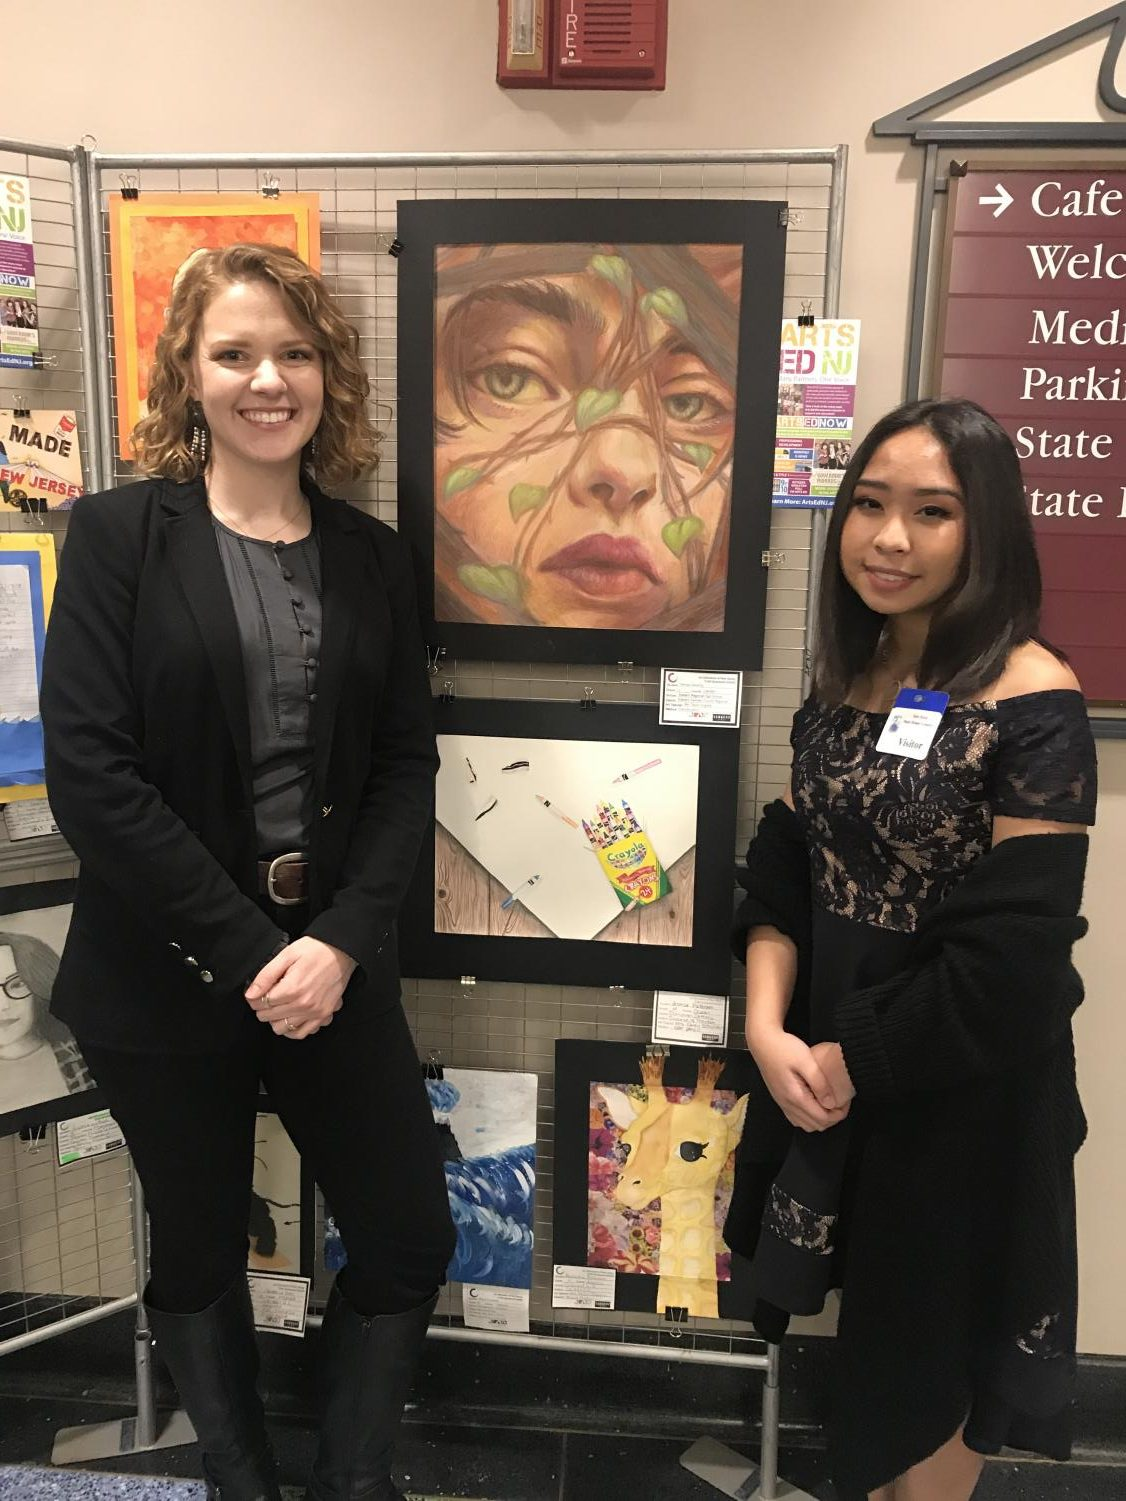 Art teacher Ms. Hughes poses with Denise Dacaney and the award-winning artwork